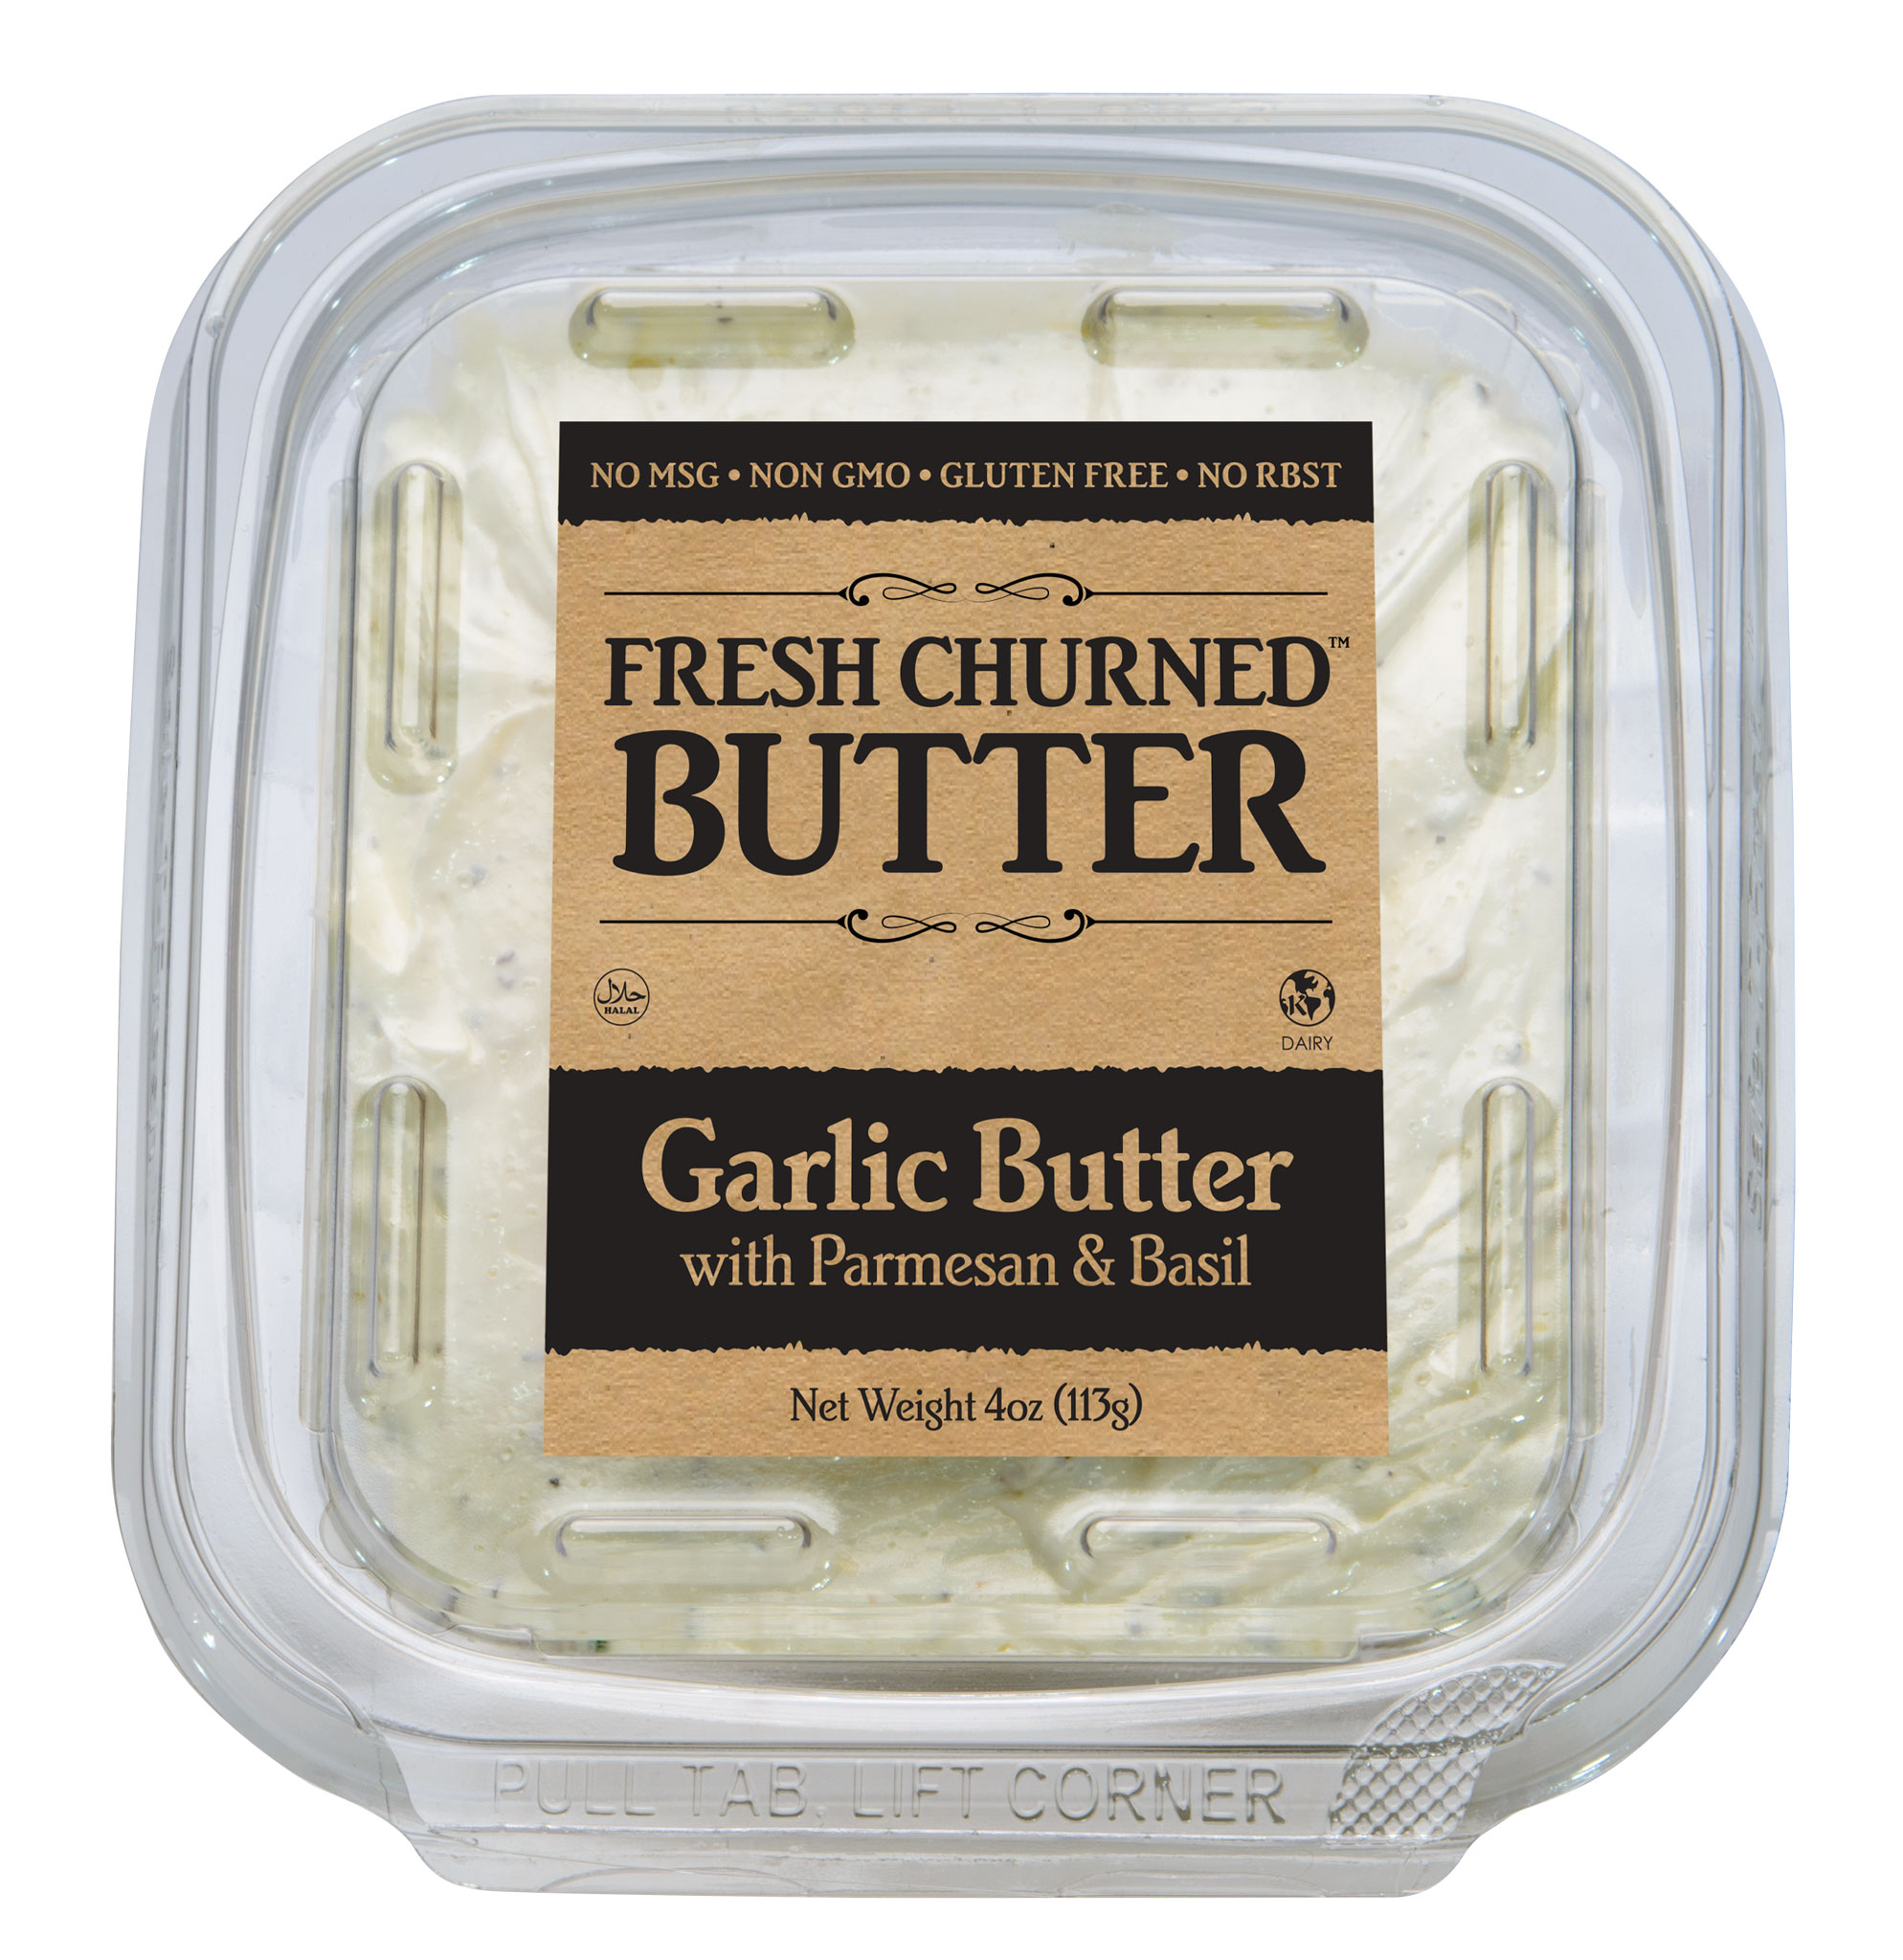 Fresh Churned Shelf Stable Real Garlic Butter by DFS Gourmet Foods